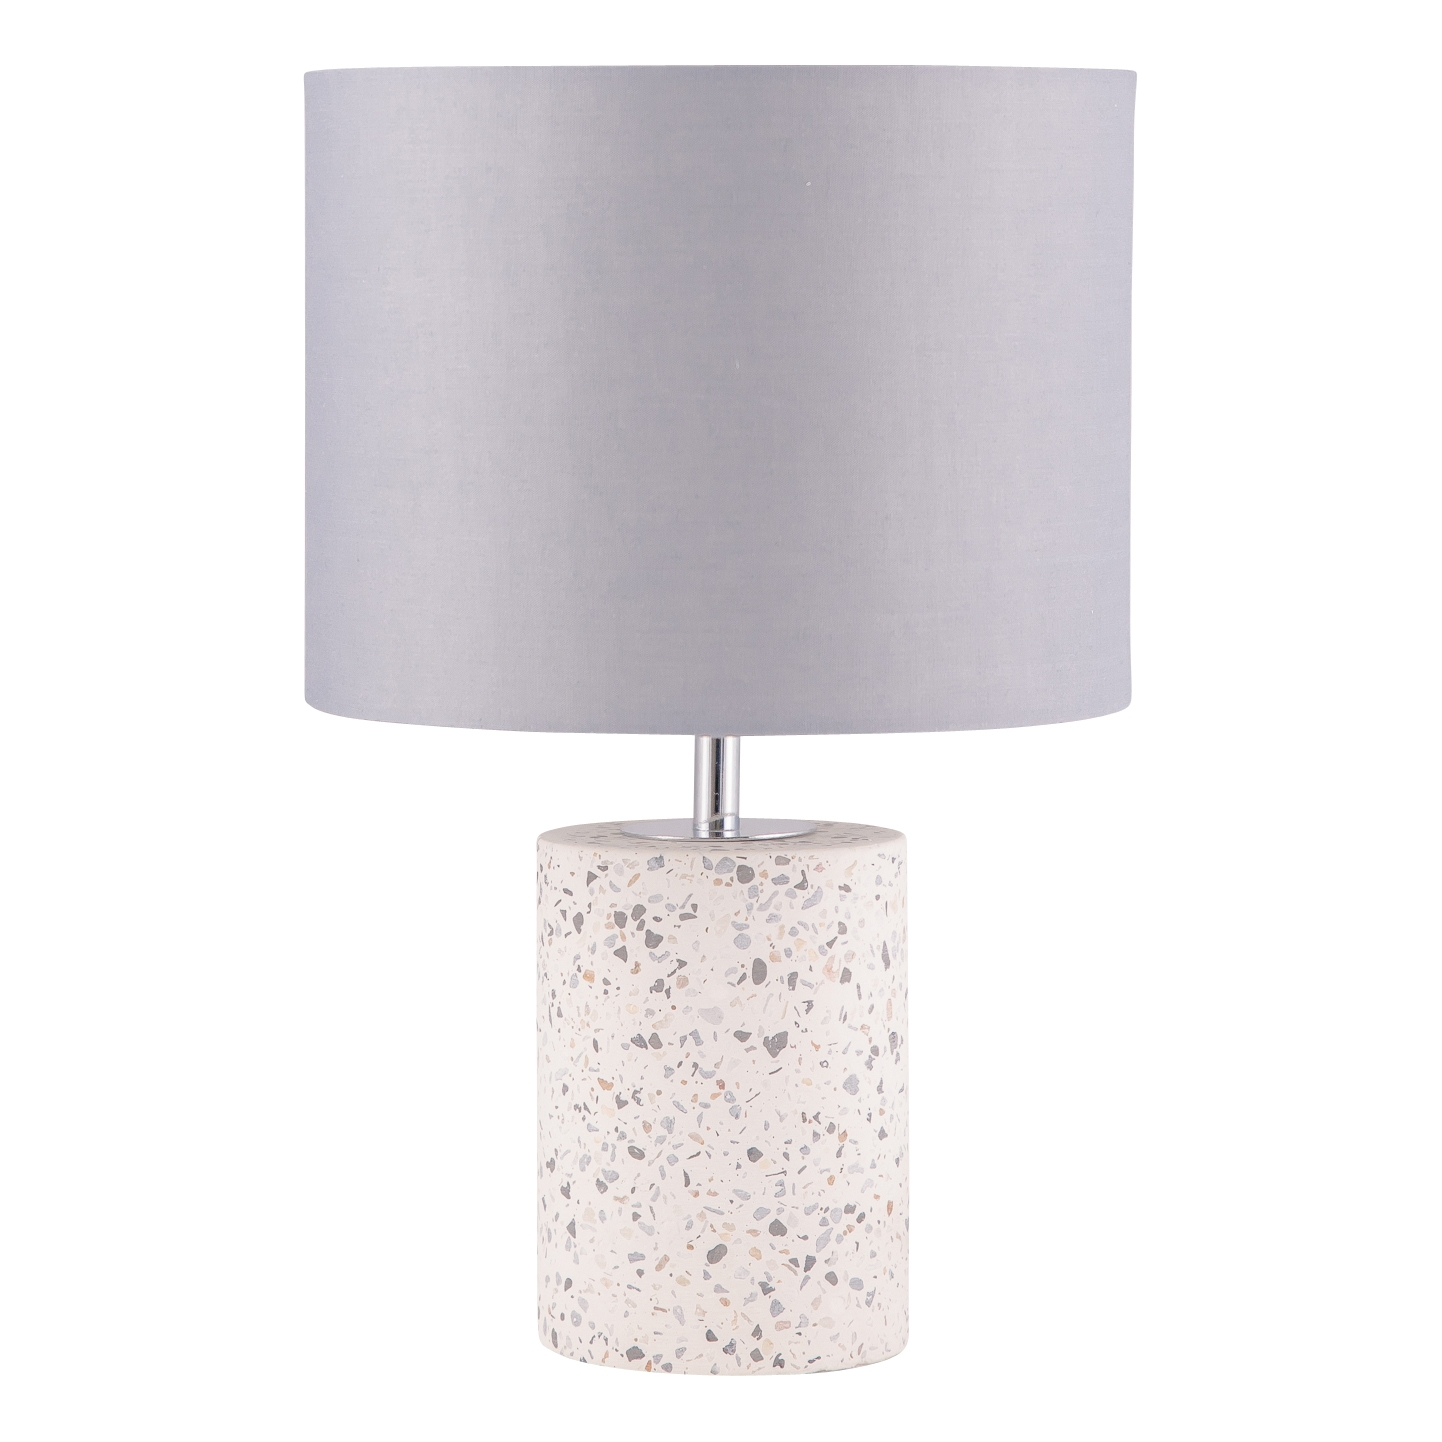 Pair Terrazzo White Concrete 32cm Bedside Light Table Lamp White Fabric Shade